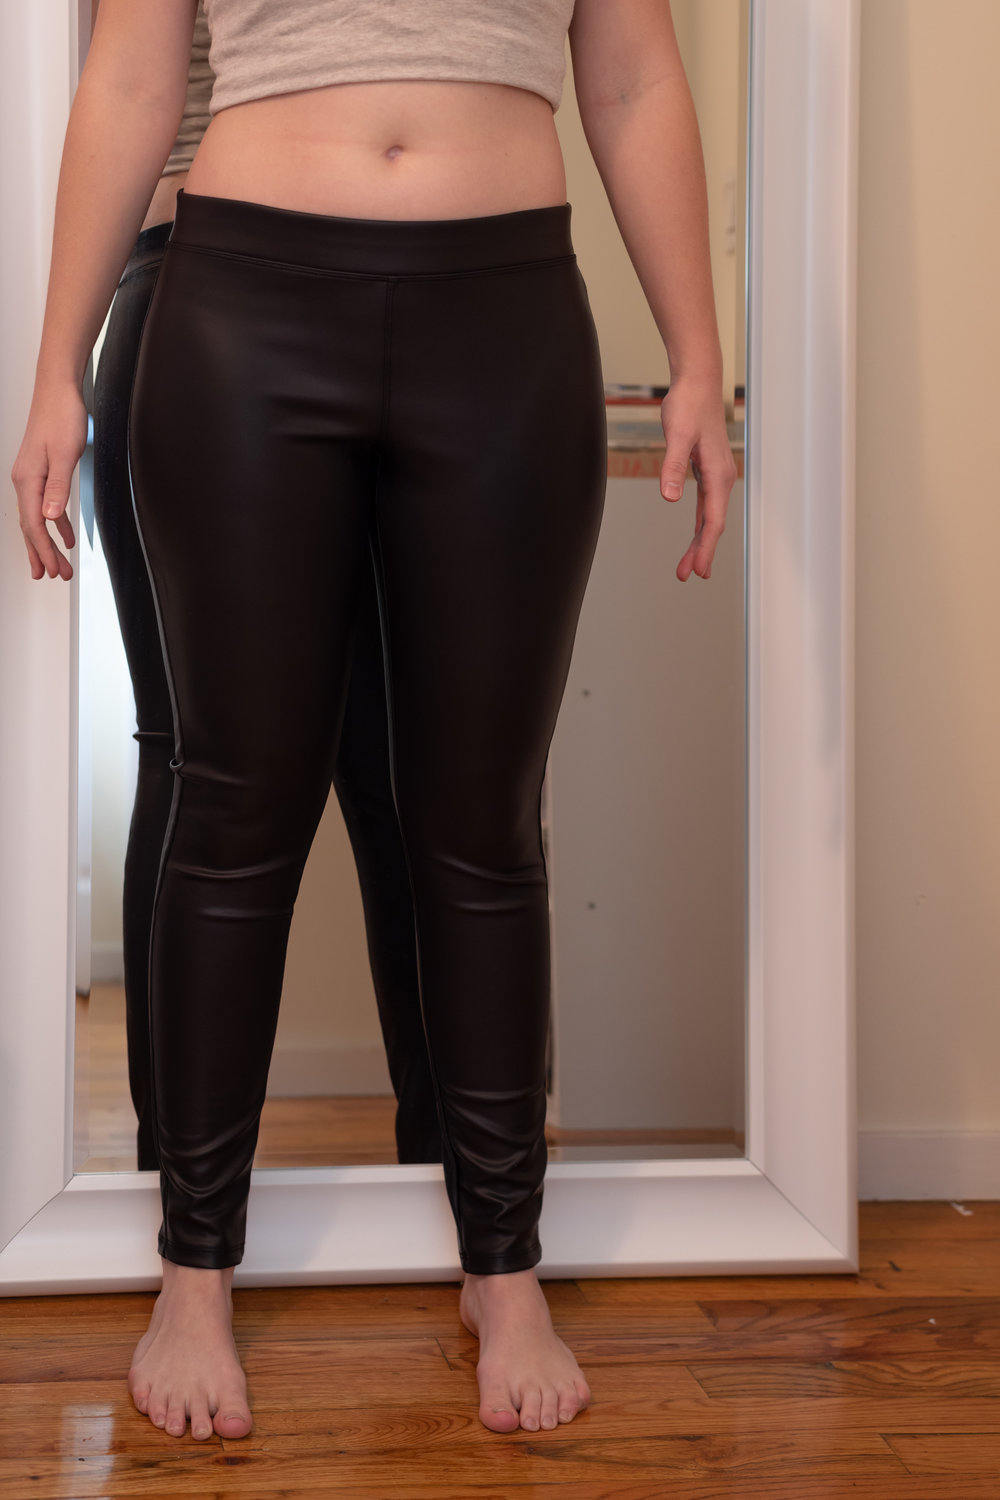 Express Petite Faux Leather Leggings - Size M